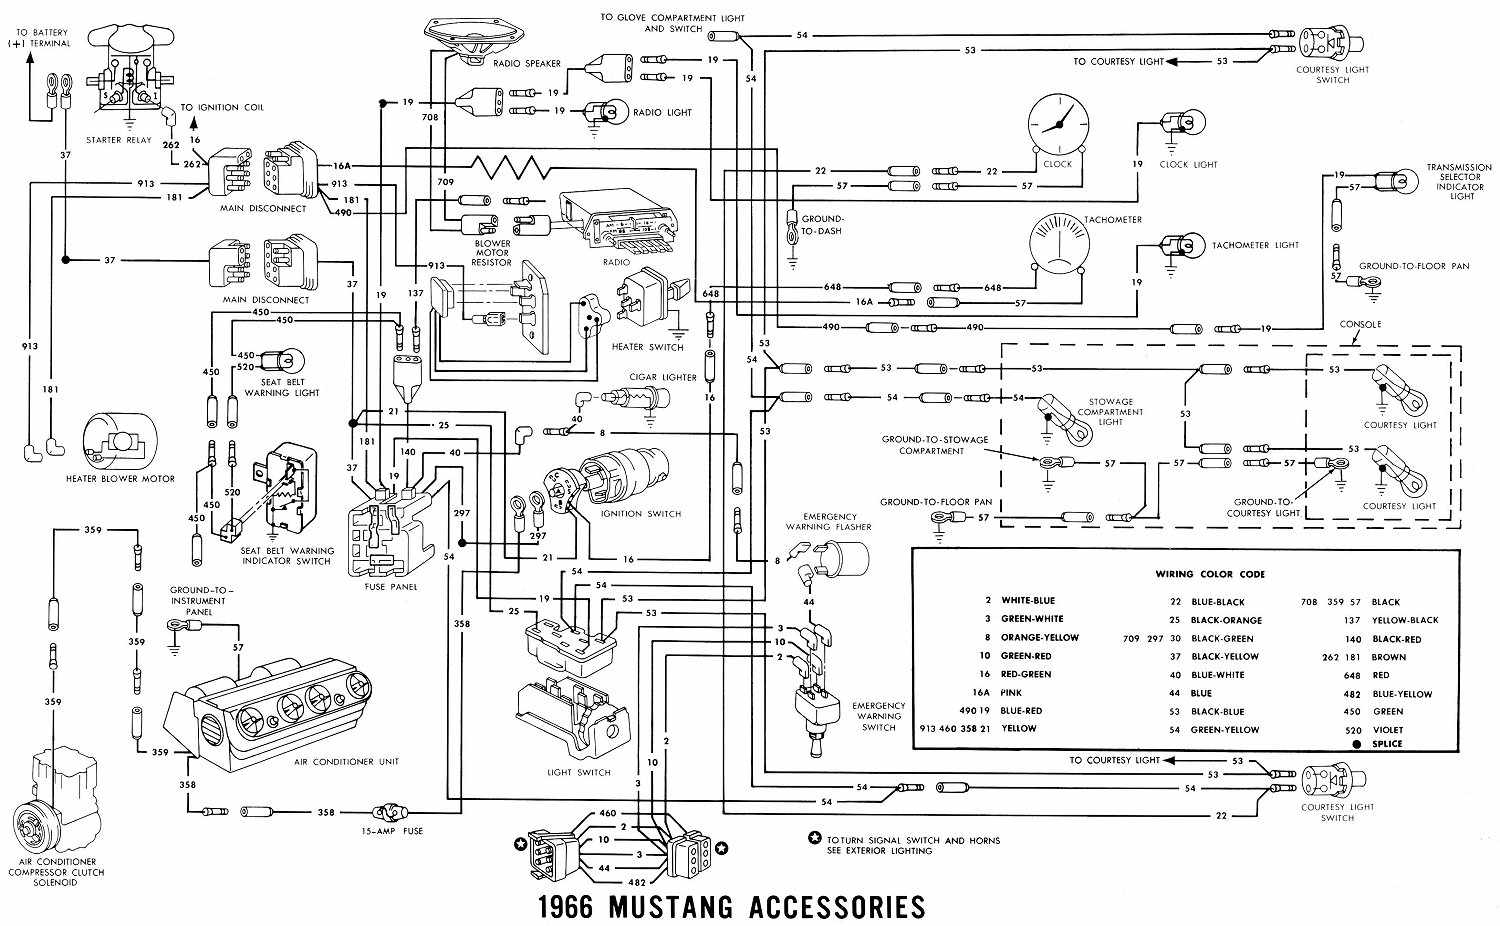 accessories electrical wiring diagrams of 1966 ford mustang all rh diagramonwiring blogspot com Aiphone Intercom Speaker Wiring Diagram Hot Water Boilers Home Heating Wiring Diagrams